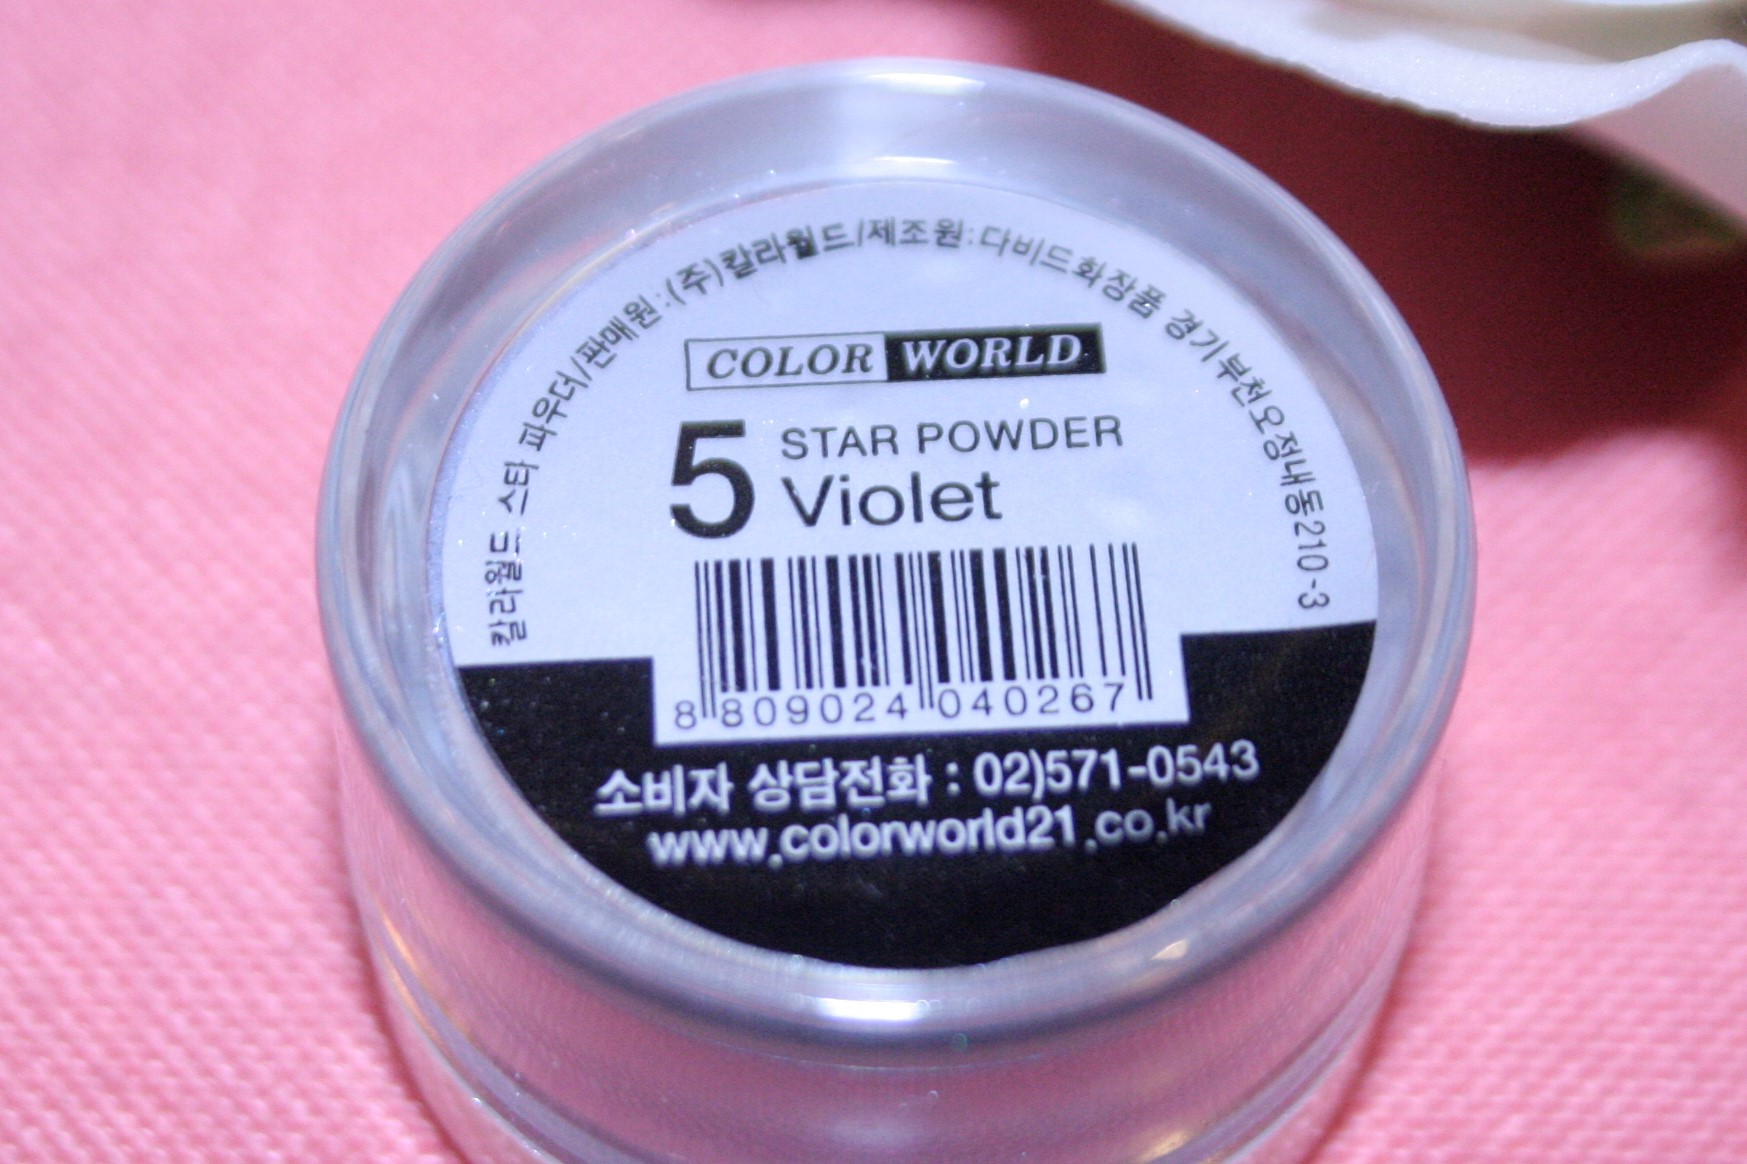 Color World Star Powder Violet 2